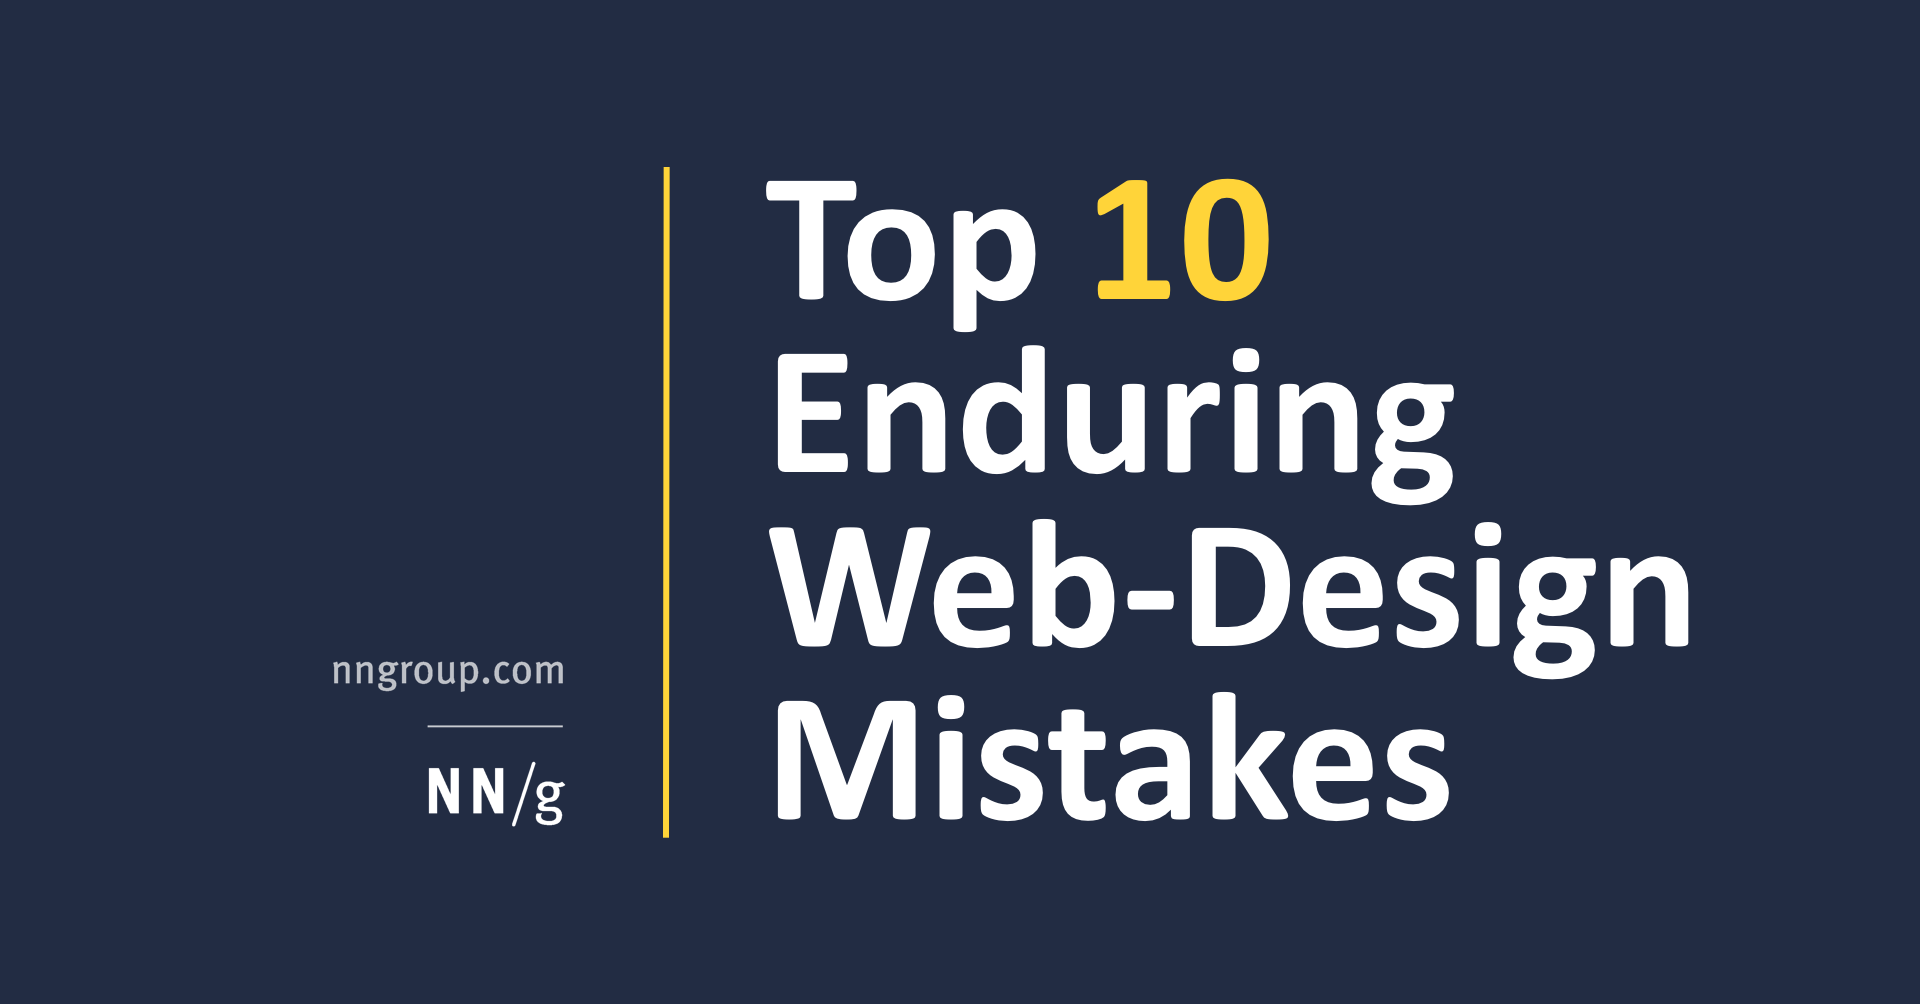 Top 10 Enduring Web-Design Mistakes